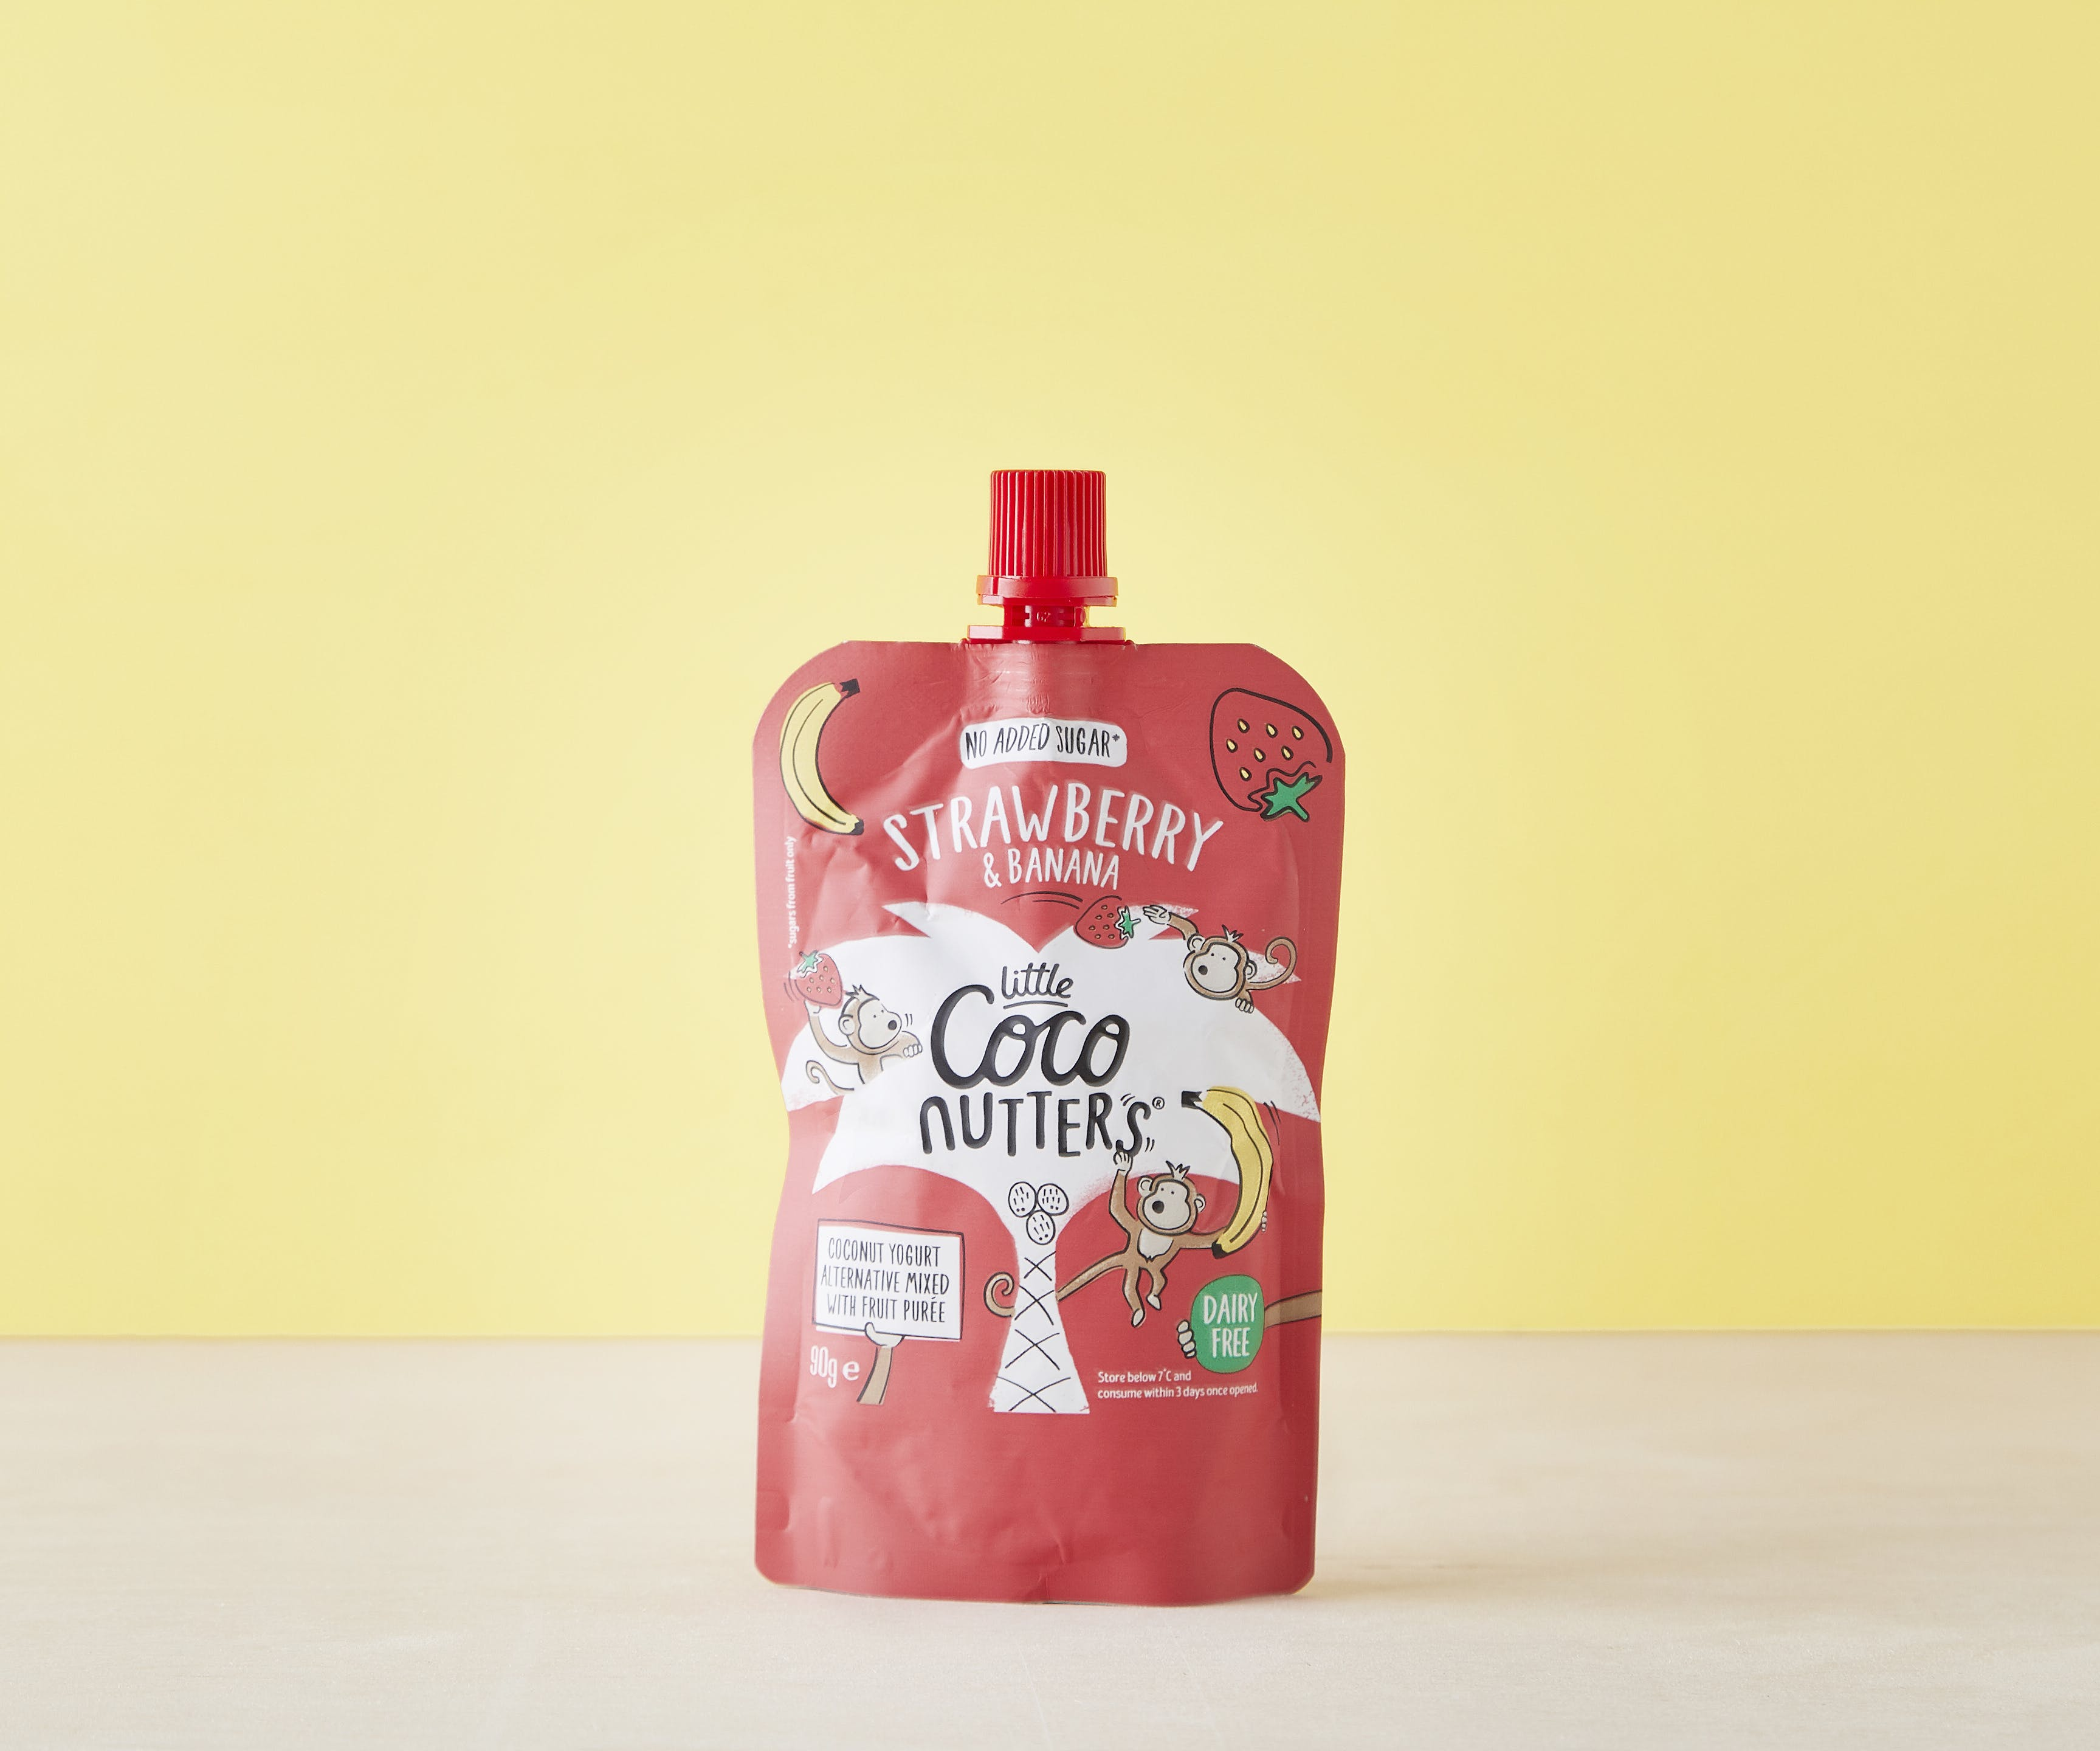 Little Coco Nutters Pouch - Strawberry & Banana